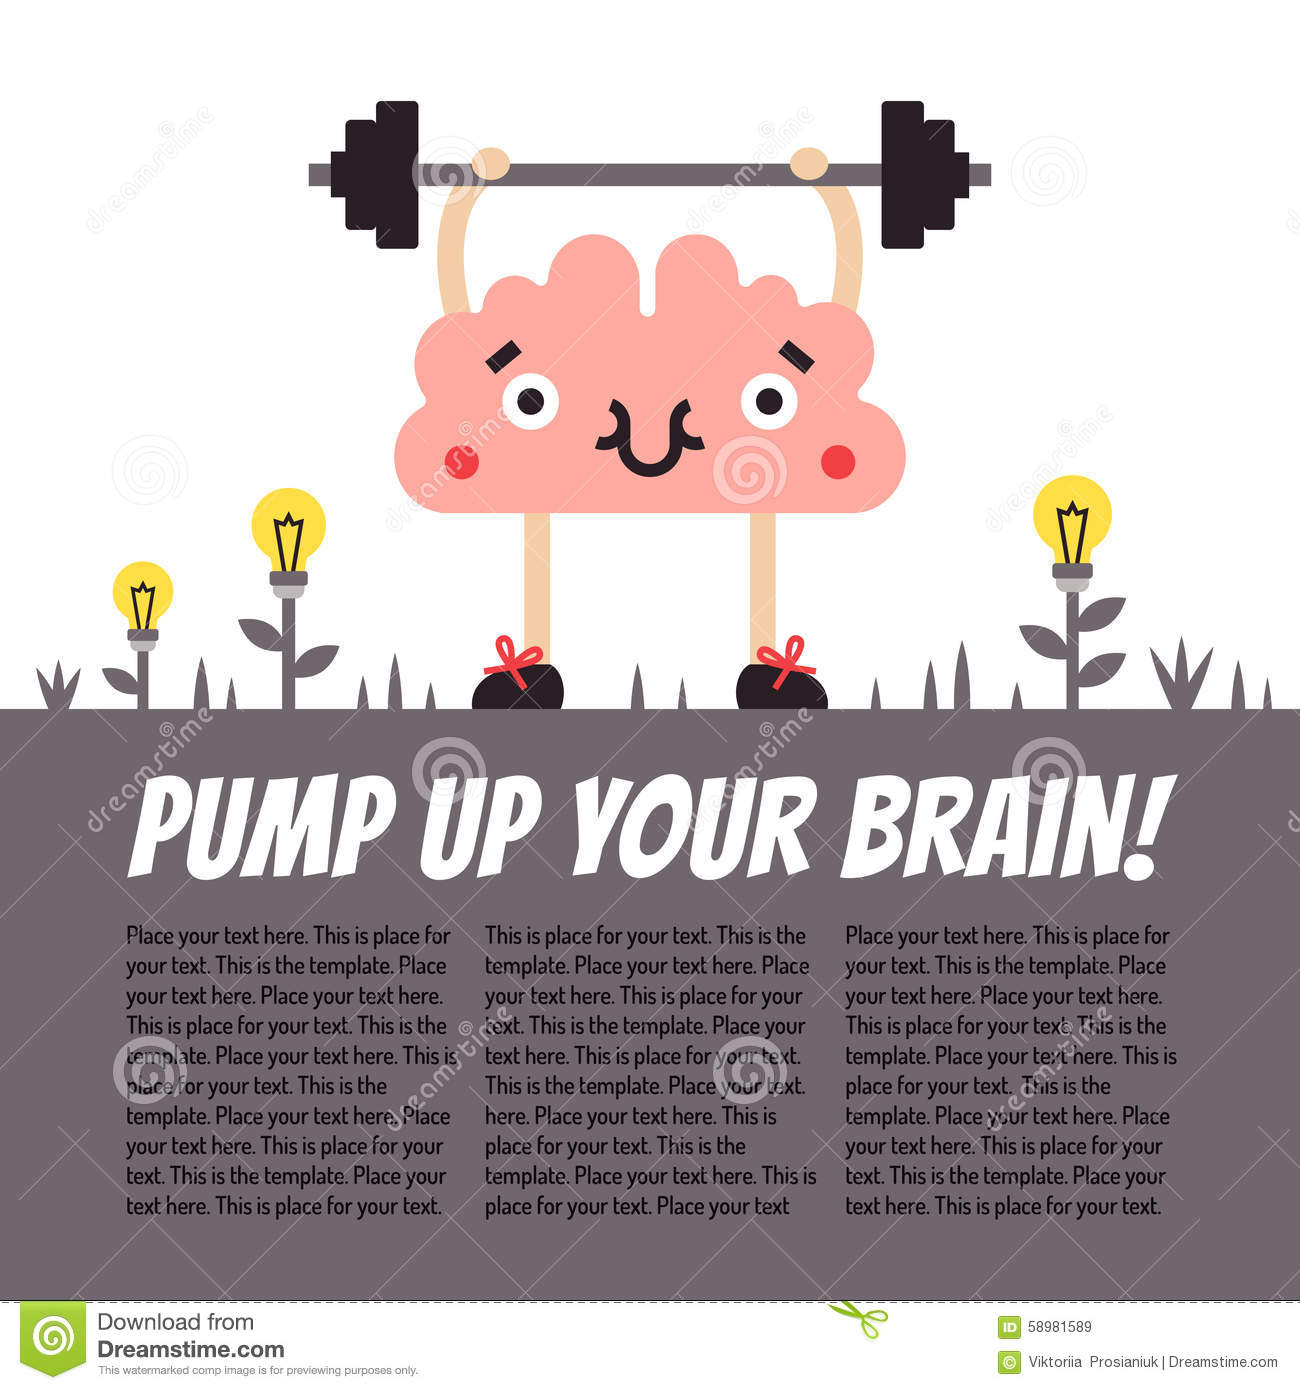 Pump Up Your Brain Vector Fun Illustration With Place For Your.